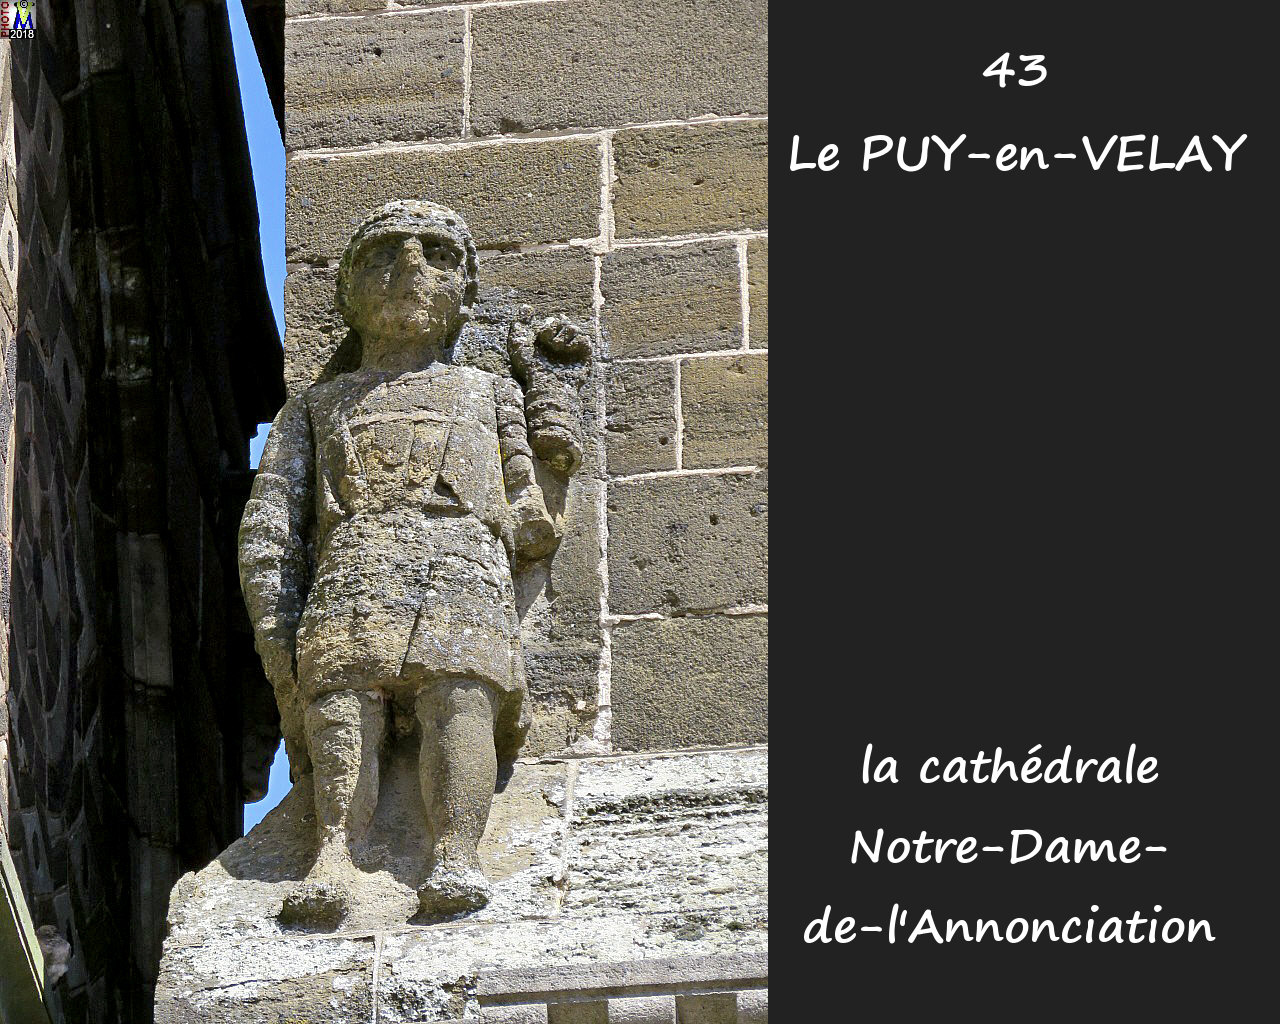 43PUY-EN-VELAY_cathedrale_158.jpg